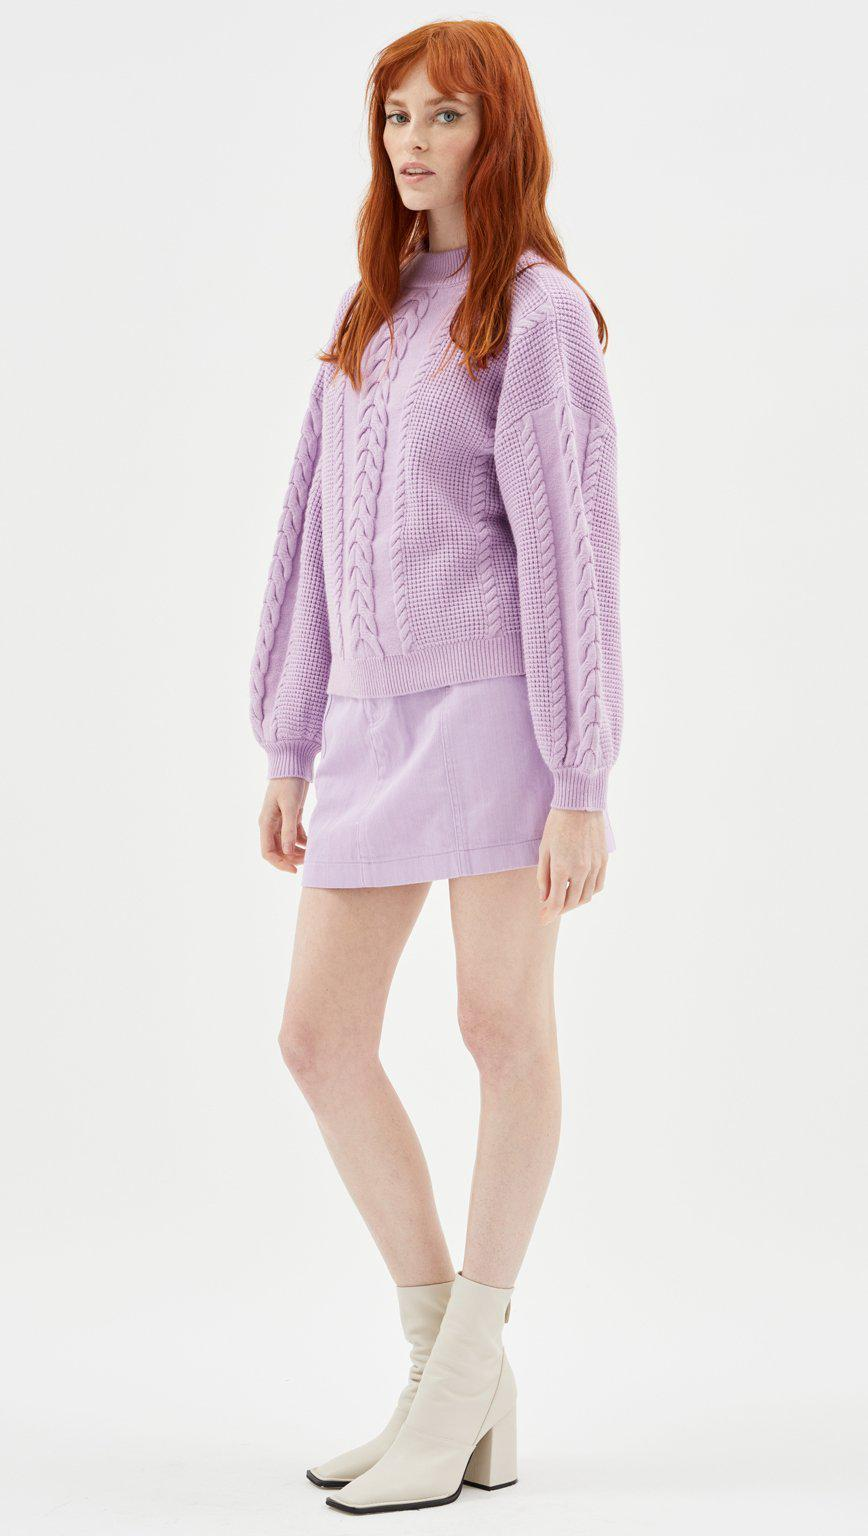 Mindy Cable Knit Jumper